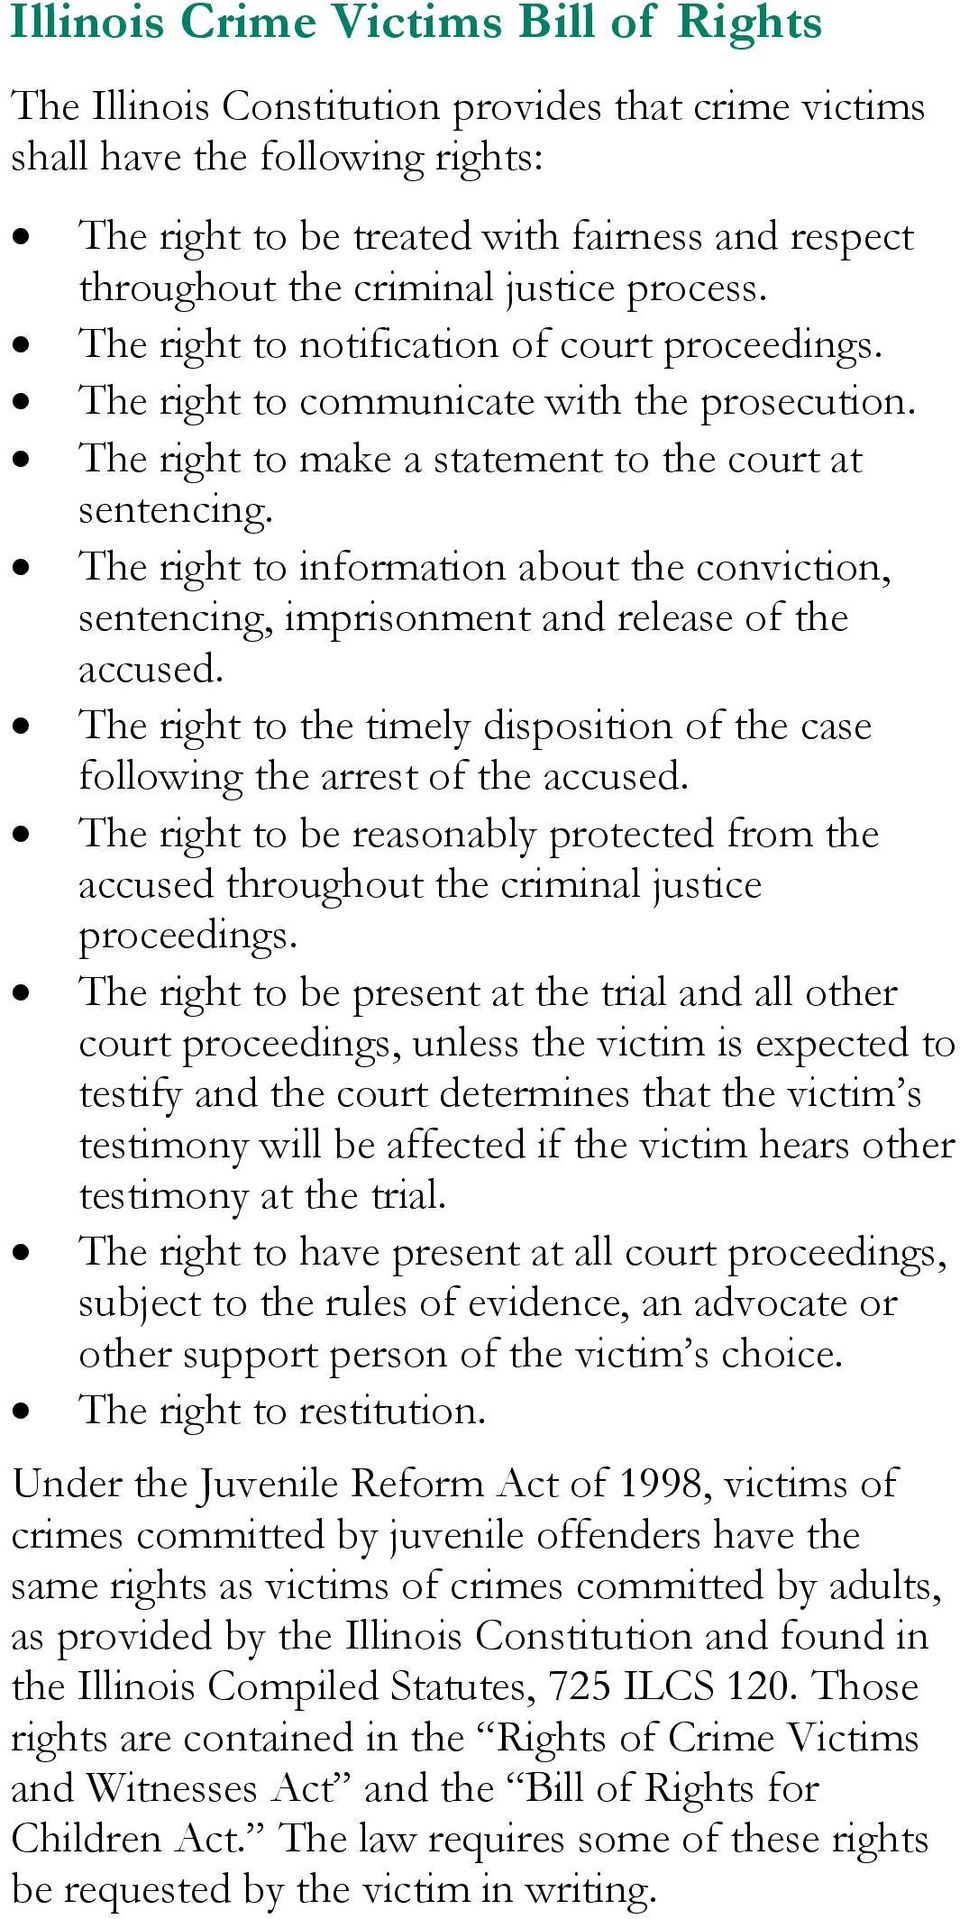 The right to information about the conviction, sentencing, imprisonment and release of the accused. The right to the timely disposition of the case following the arrest of the accused.